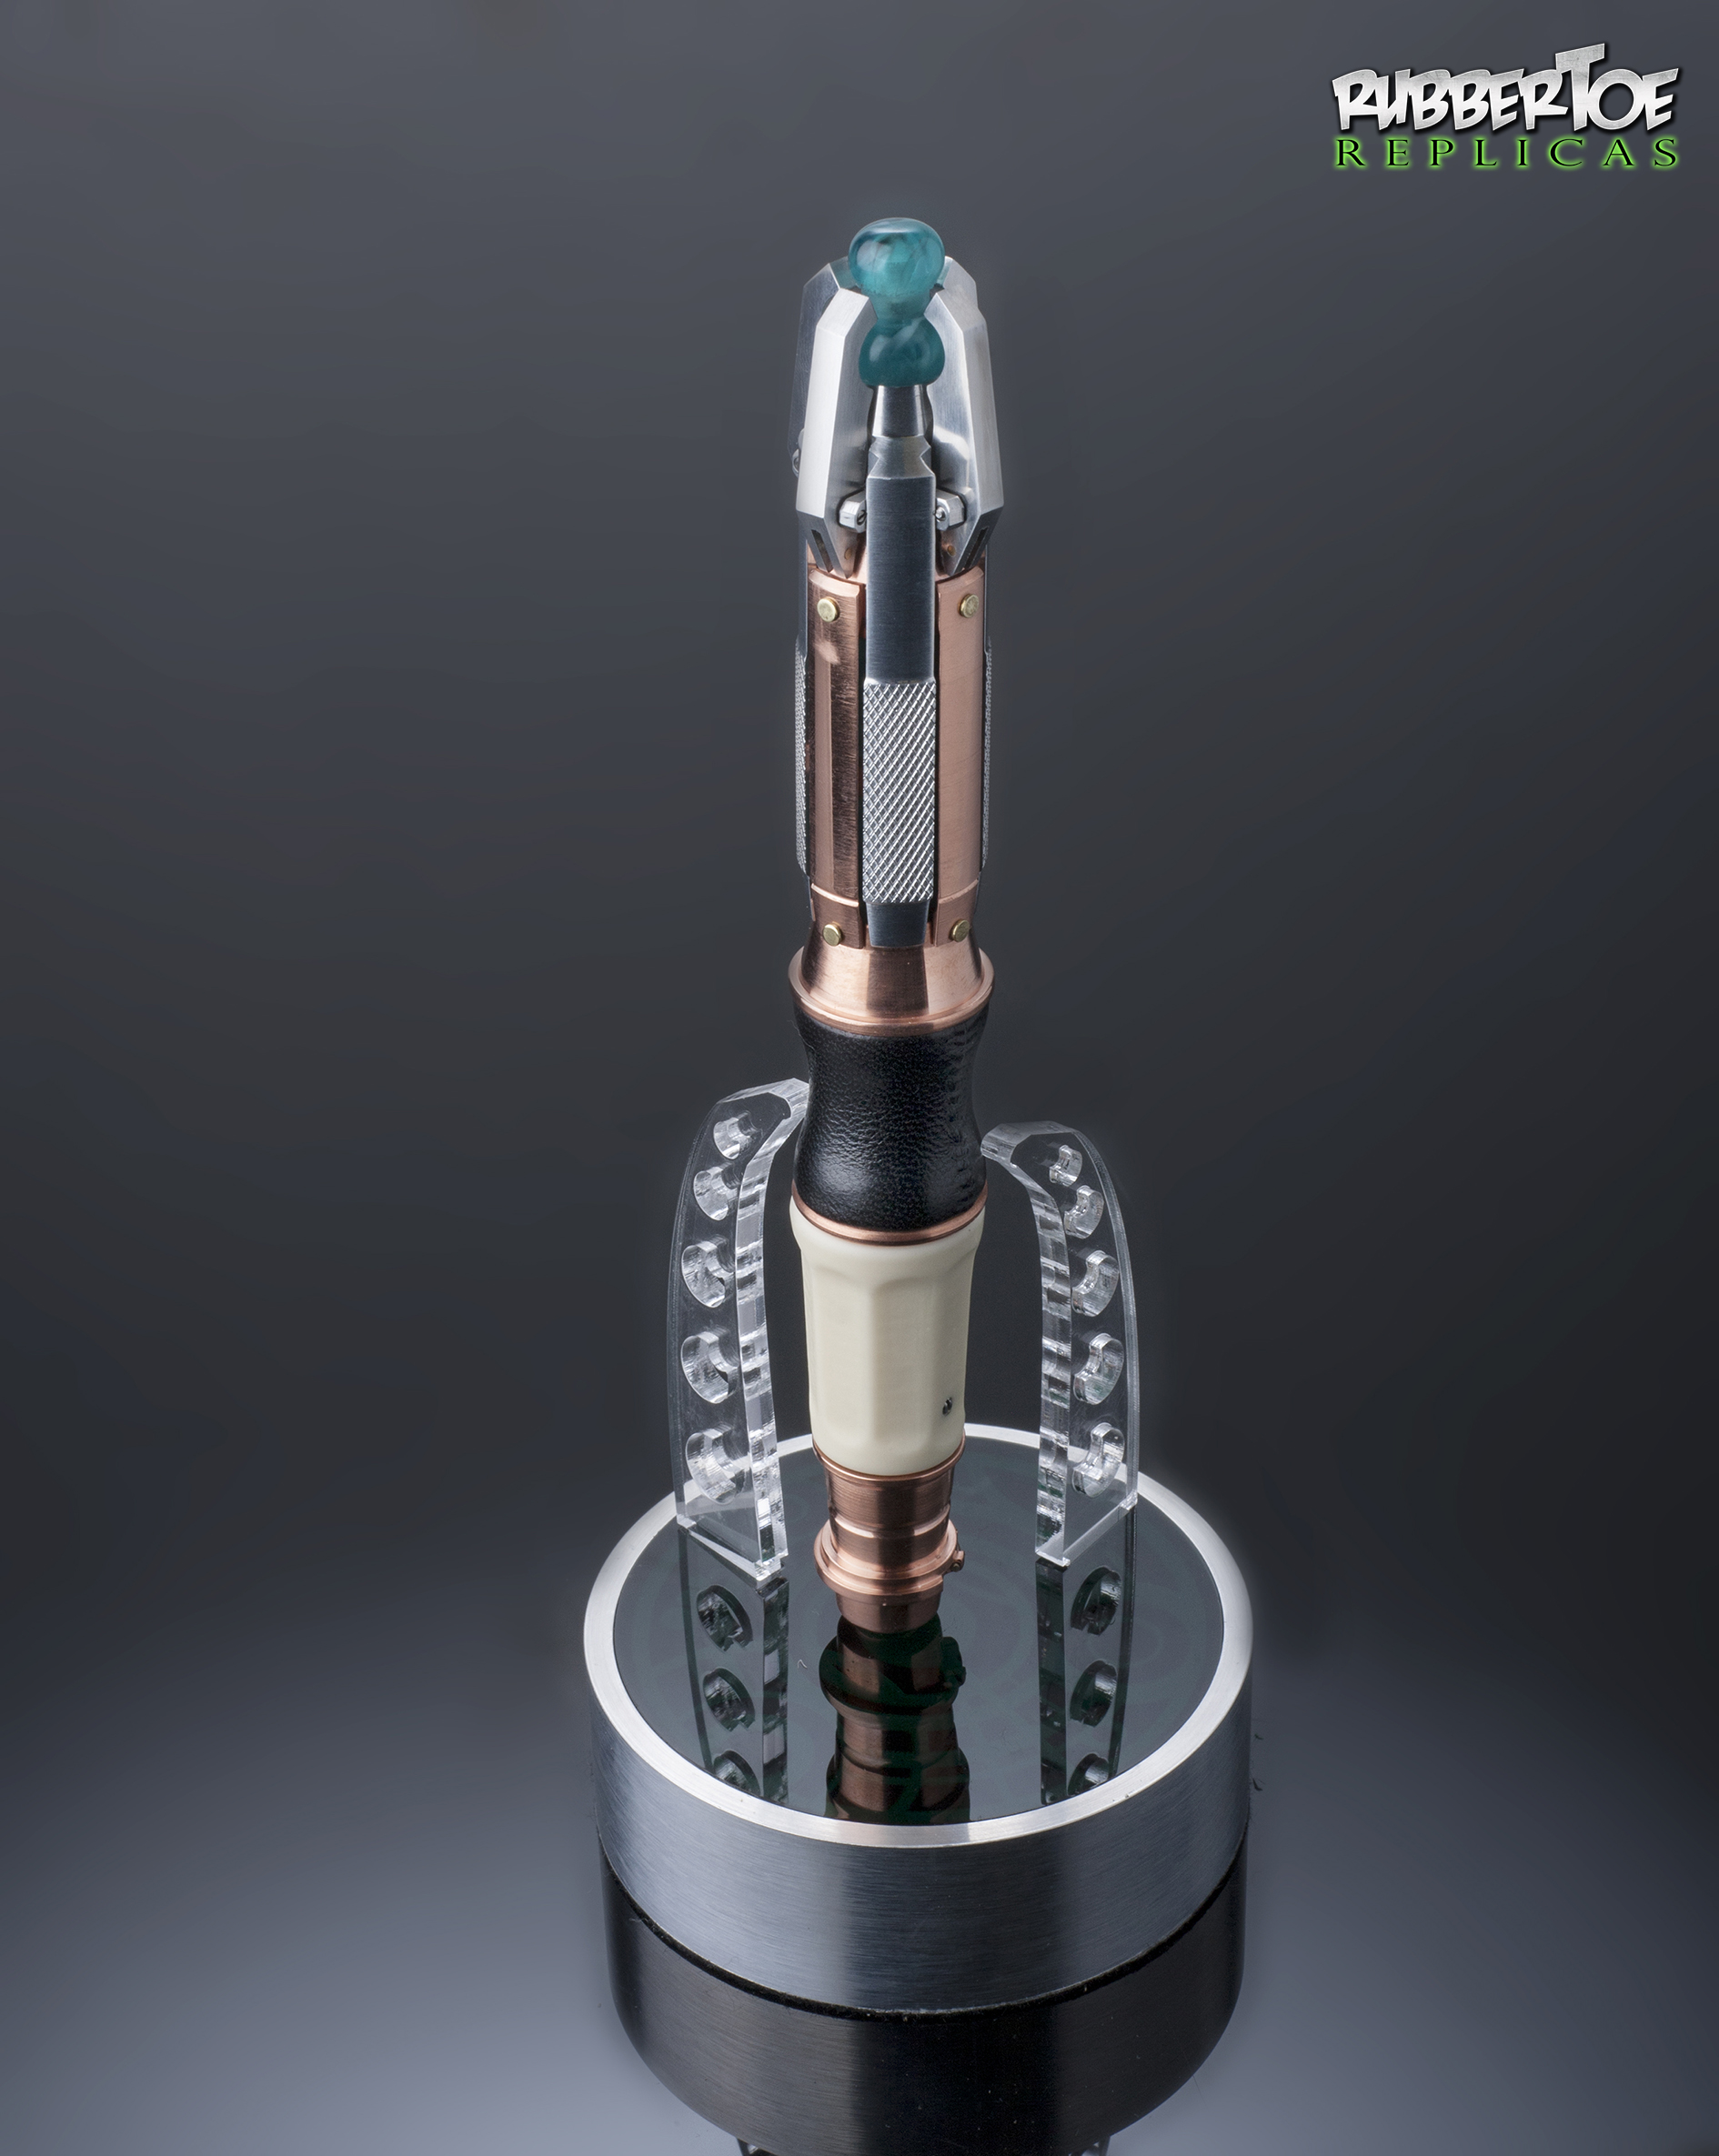 Sonic screwdriver - Wikipedia